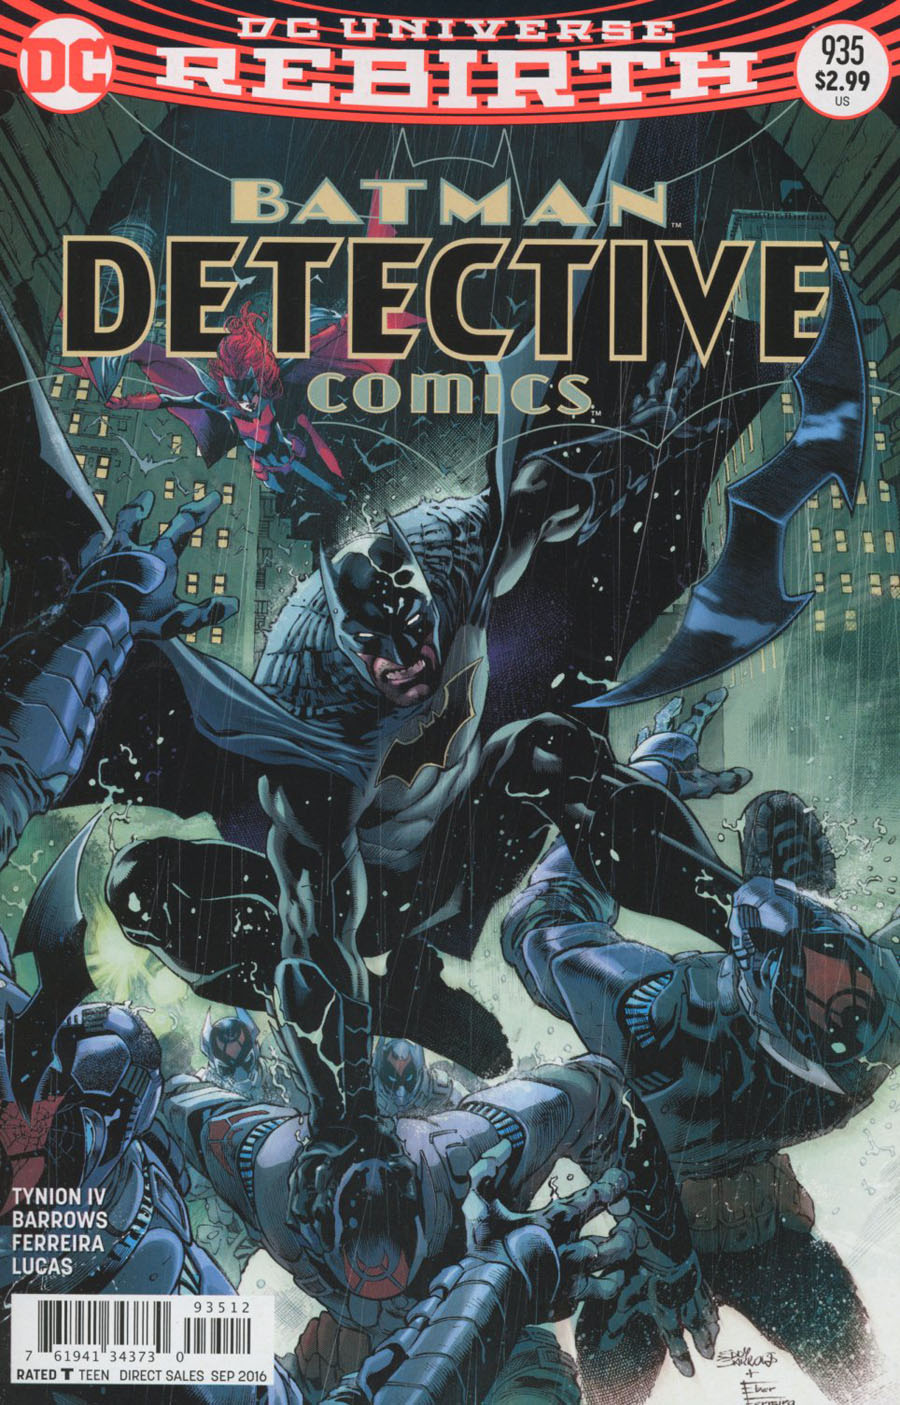 Detective Comics Vol 2 #935 Cover C 2nd Ptg Eddy Barrows & Eber Ferreira Variant Cover